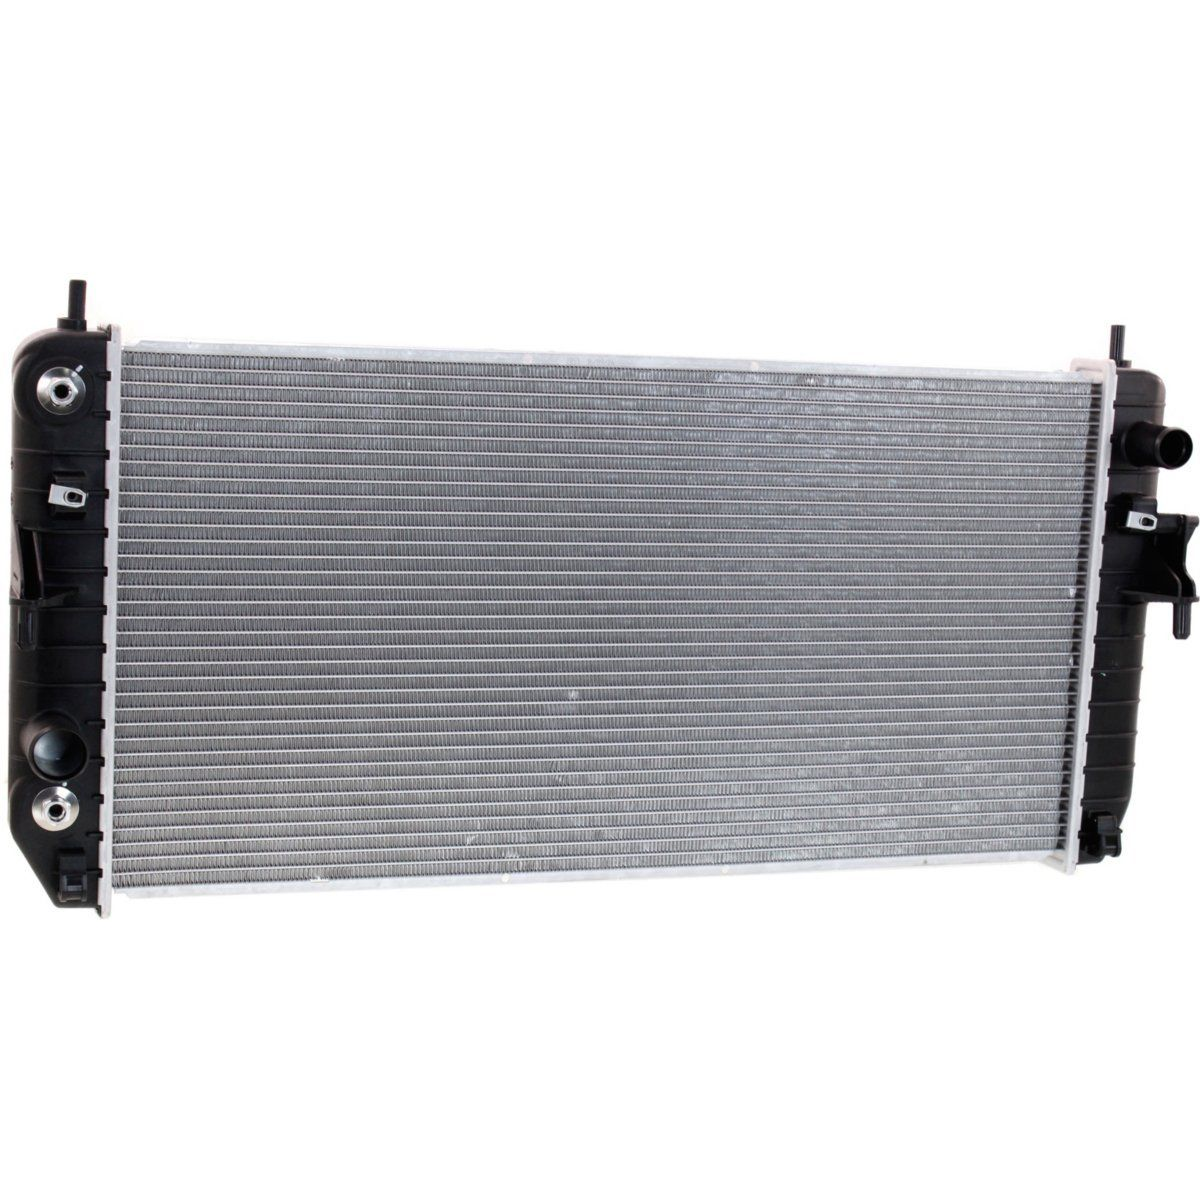 Radiator For 2006-11 Cadillac DTS Buick Lucerne 4.6L 1 Row